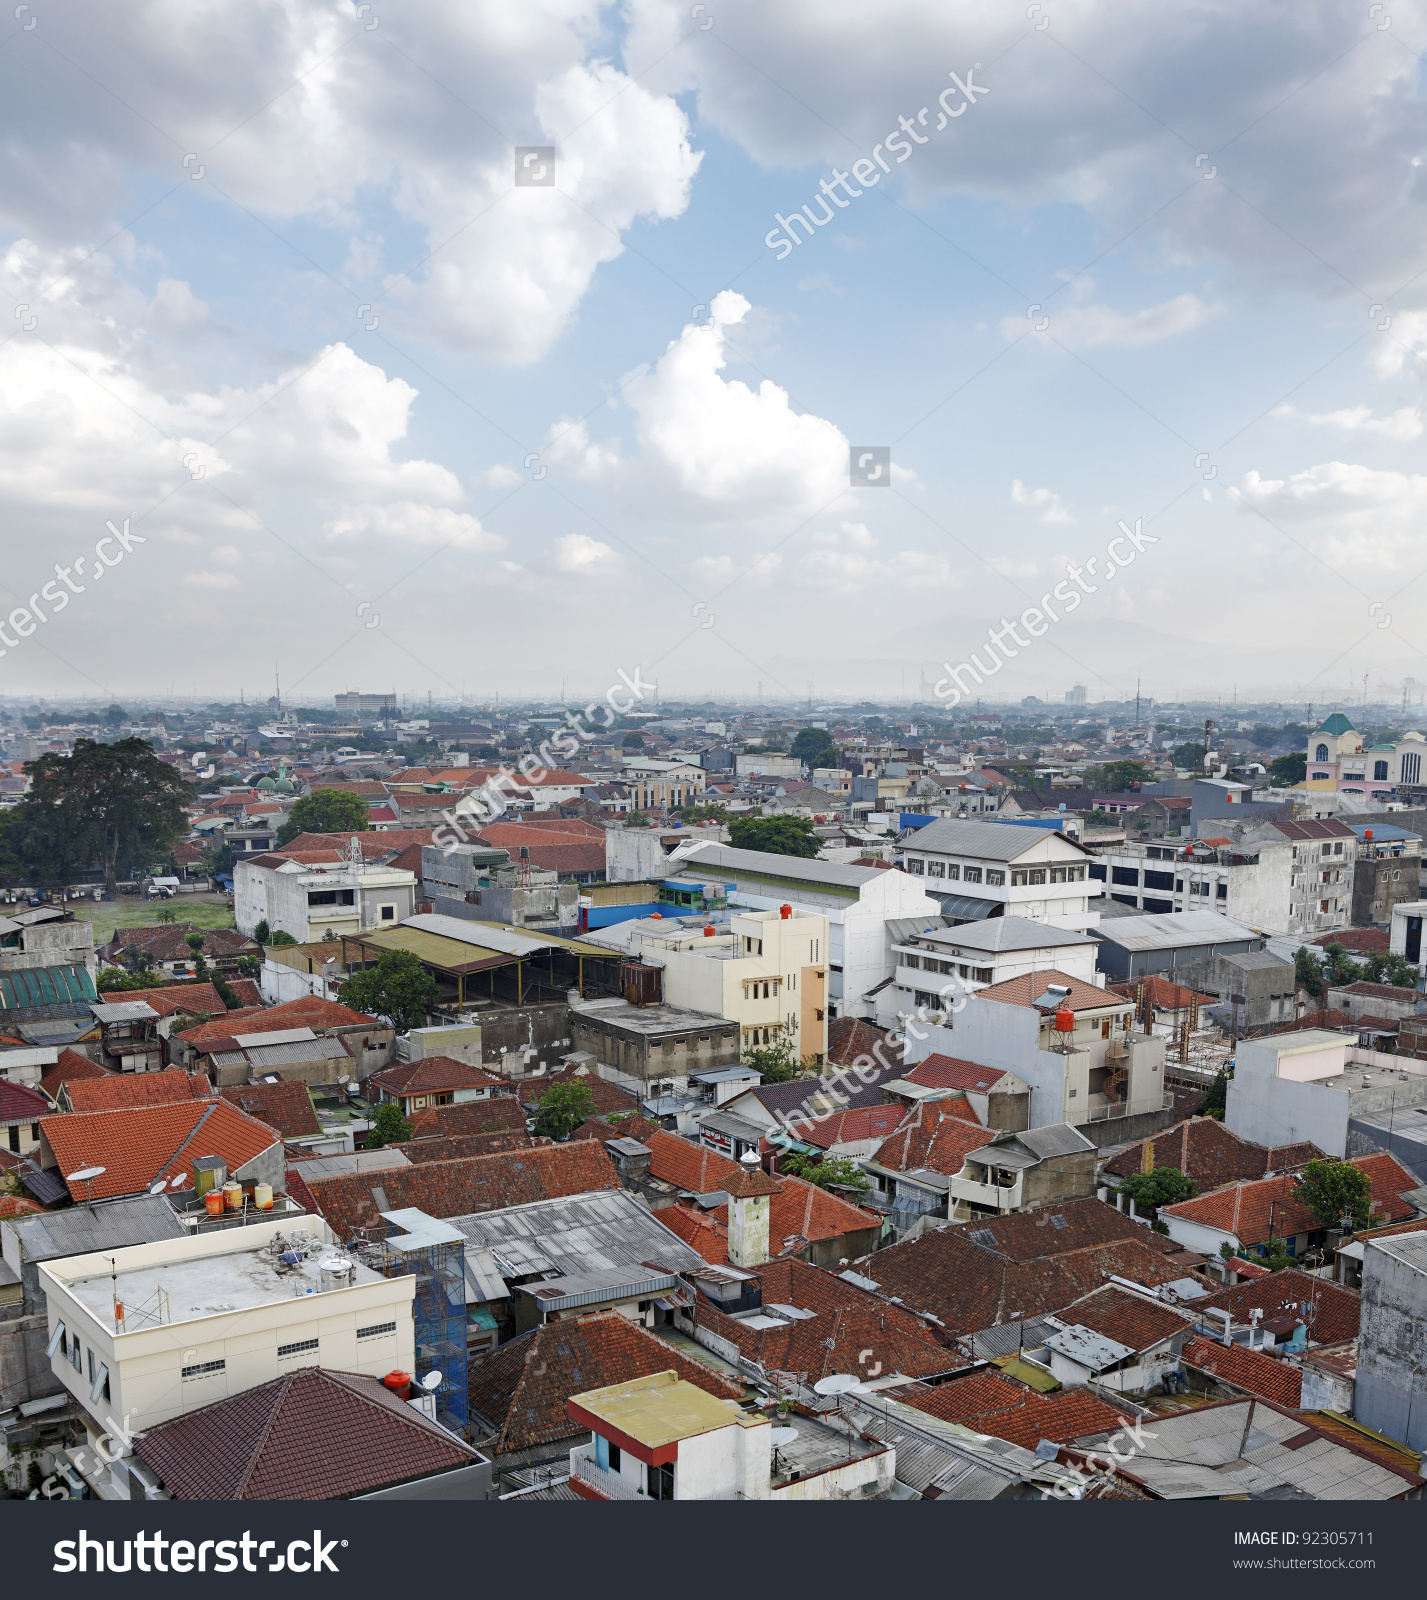 The Urban Skyline Of The Densely Populated Bandung City In Java.